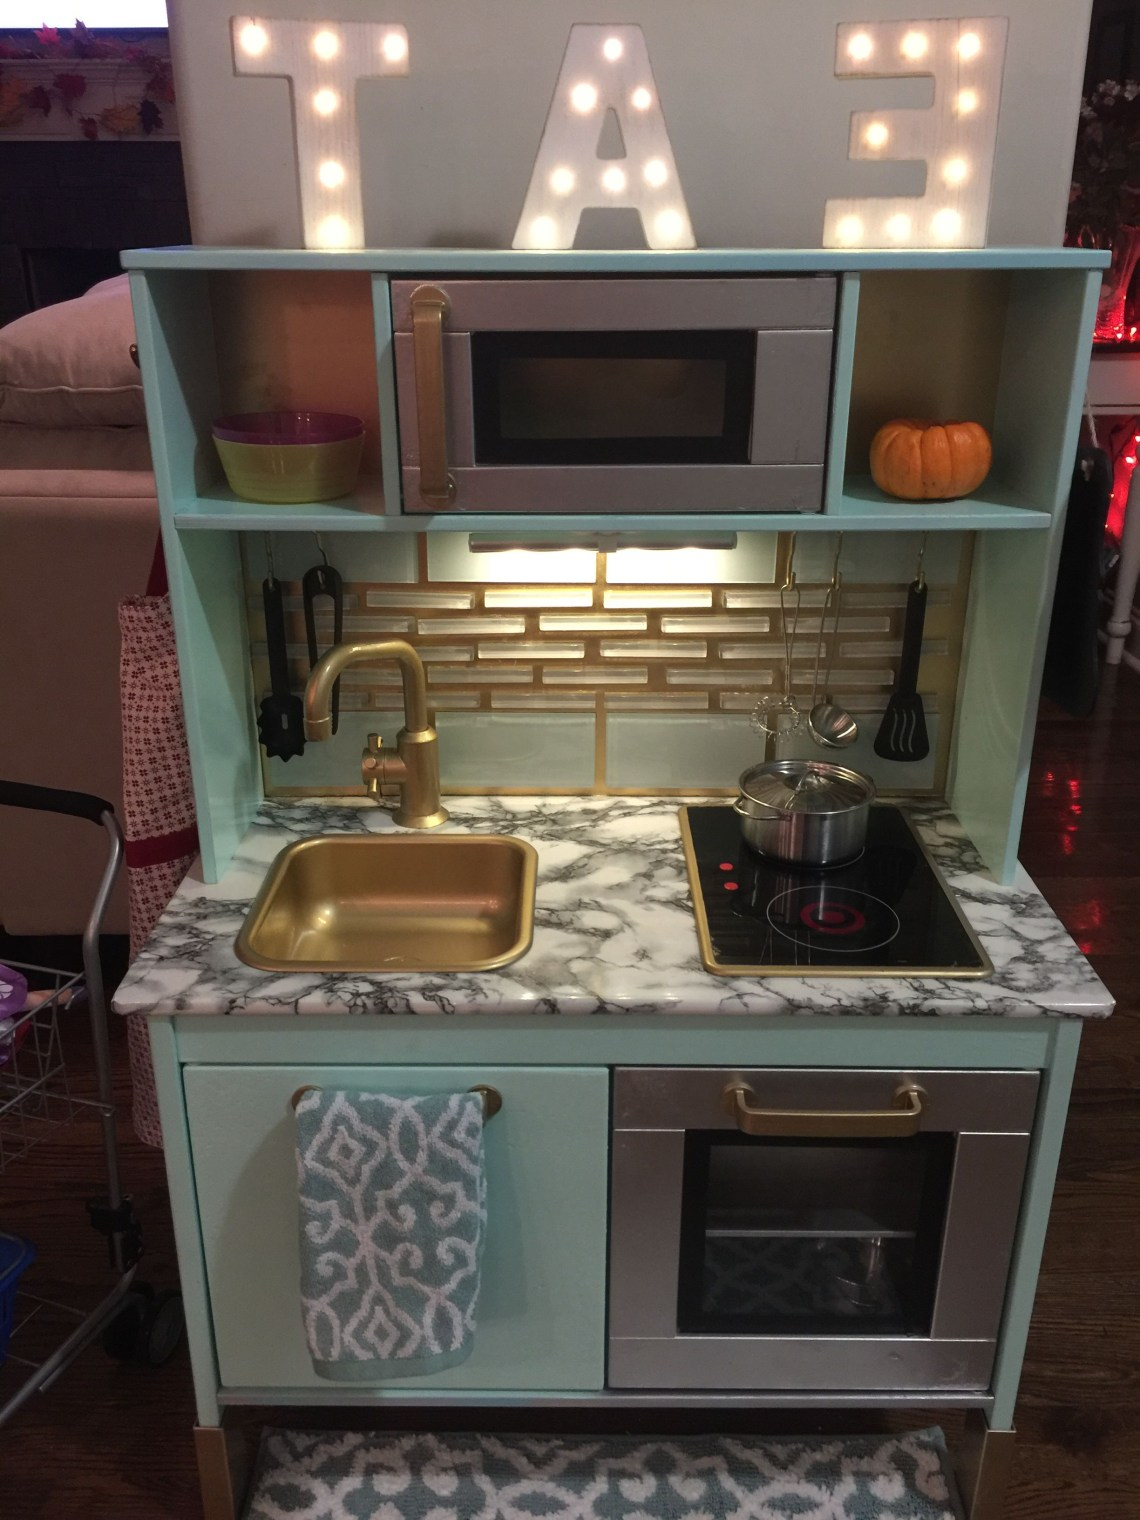 This Kitchen Set From Ikea Turned Out Amazing I Painted